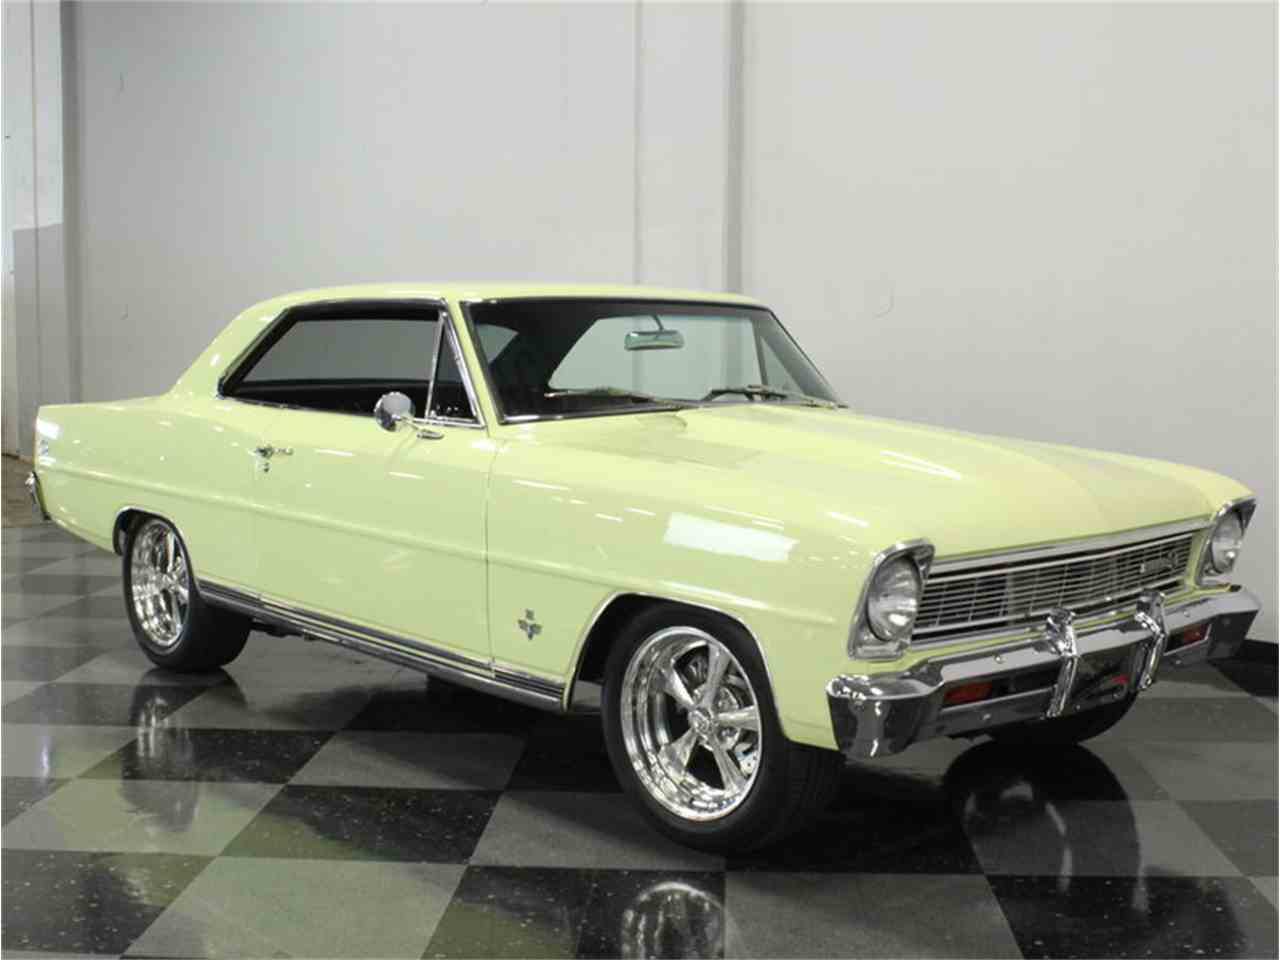 Large Picture of '66 Nova located in Texas - $67,995.00 Offered by Streetside Classics - Dallas / Fort Worth - HX89